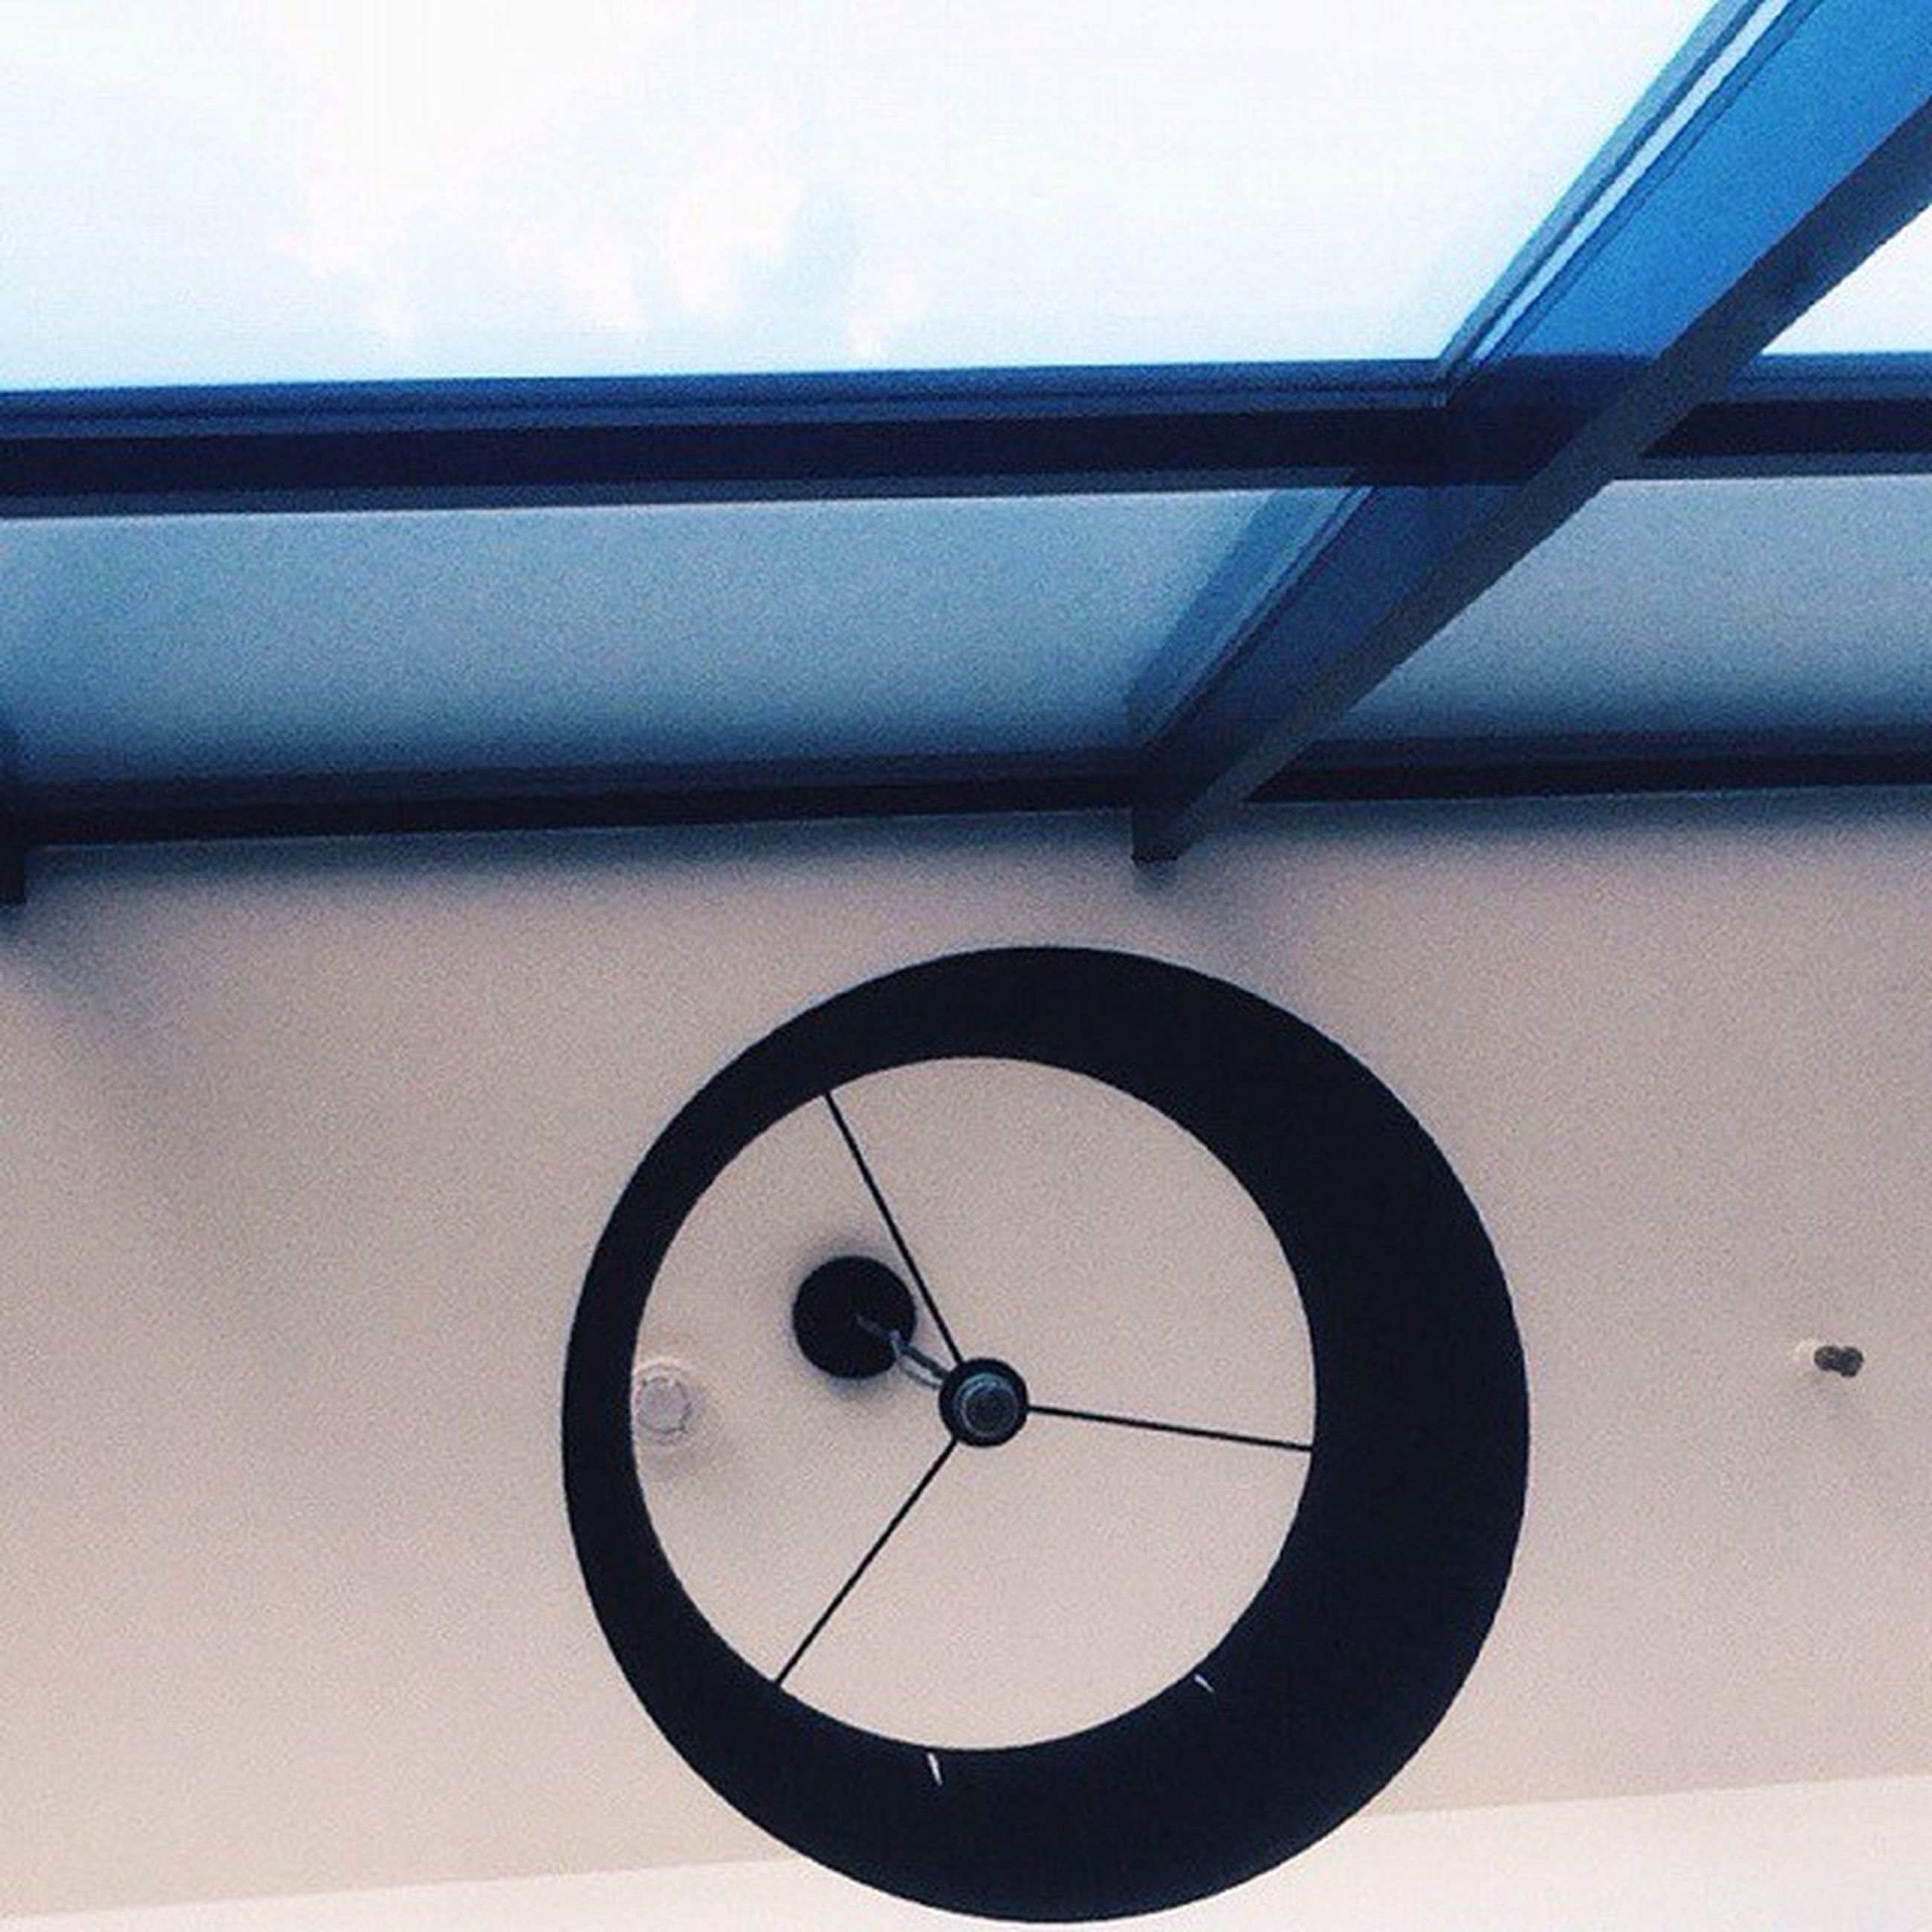 indoors, low angle view, architecture, built structure, circle, clock, directly below, wall - building feature, time, geometric shape, ceiling, technology, wall, electricity, no people, close-up, lighting equipment, copy space, day, communication